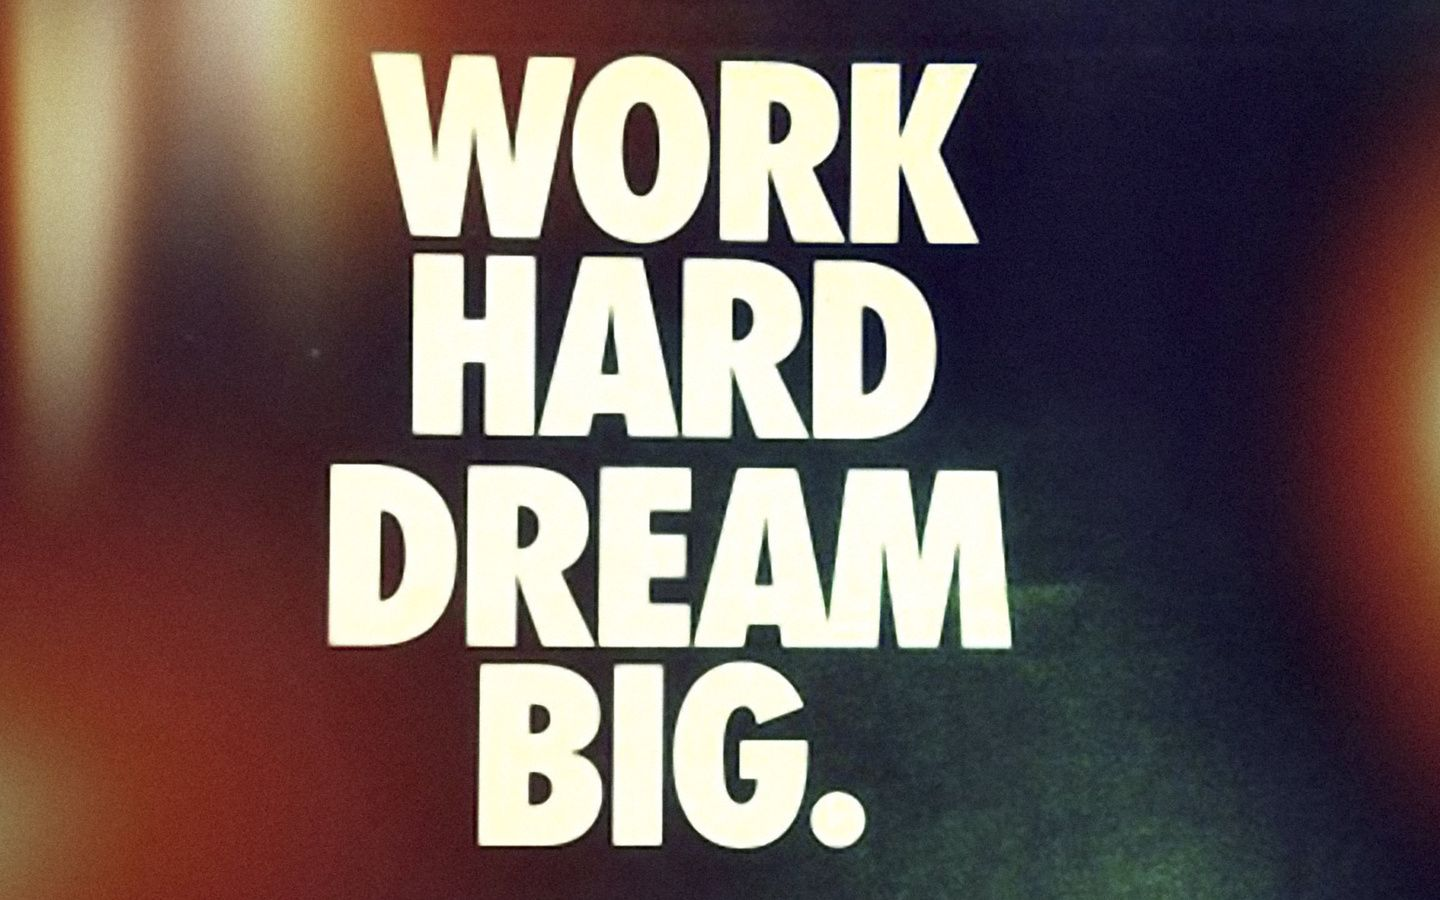 hard work It's hard to be a success without working hard–but it doesn't guarantee anything, especially in this economy.